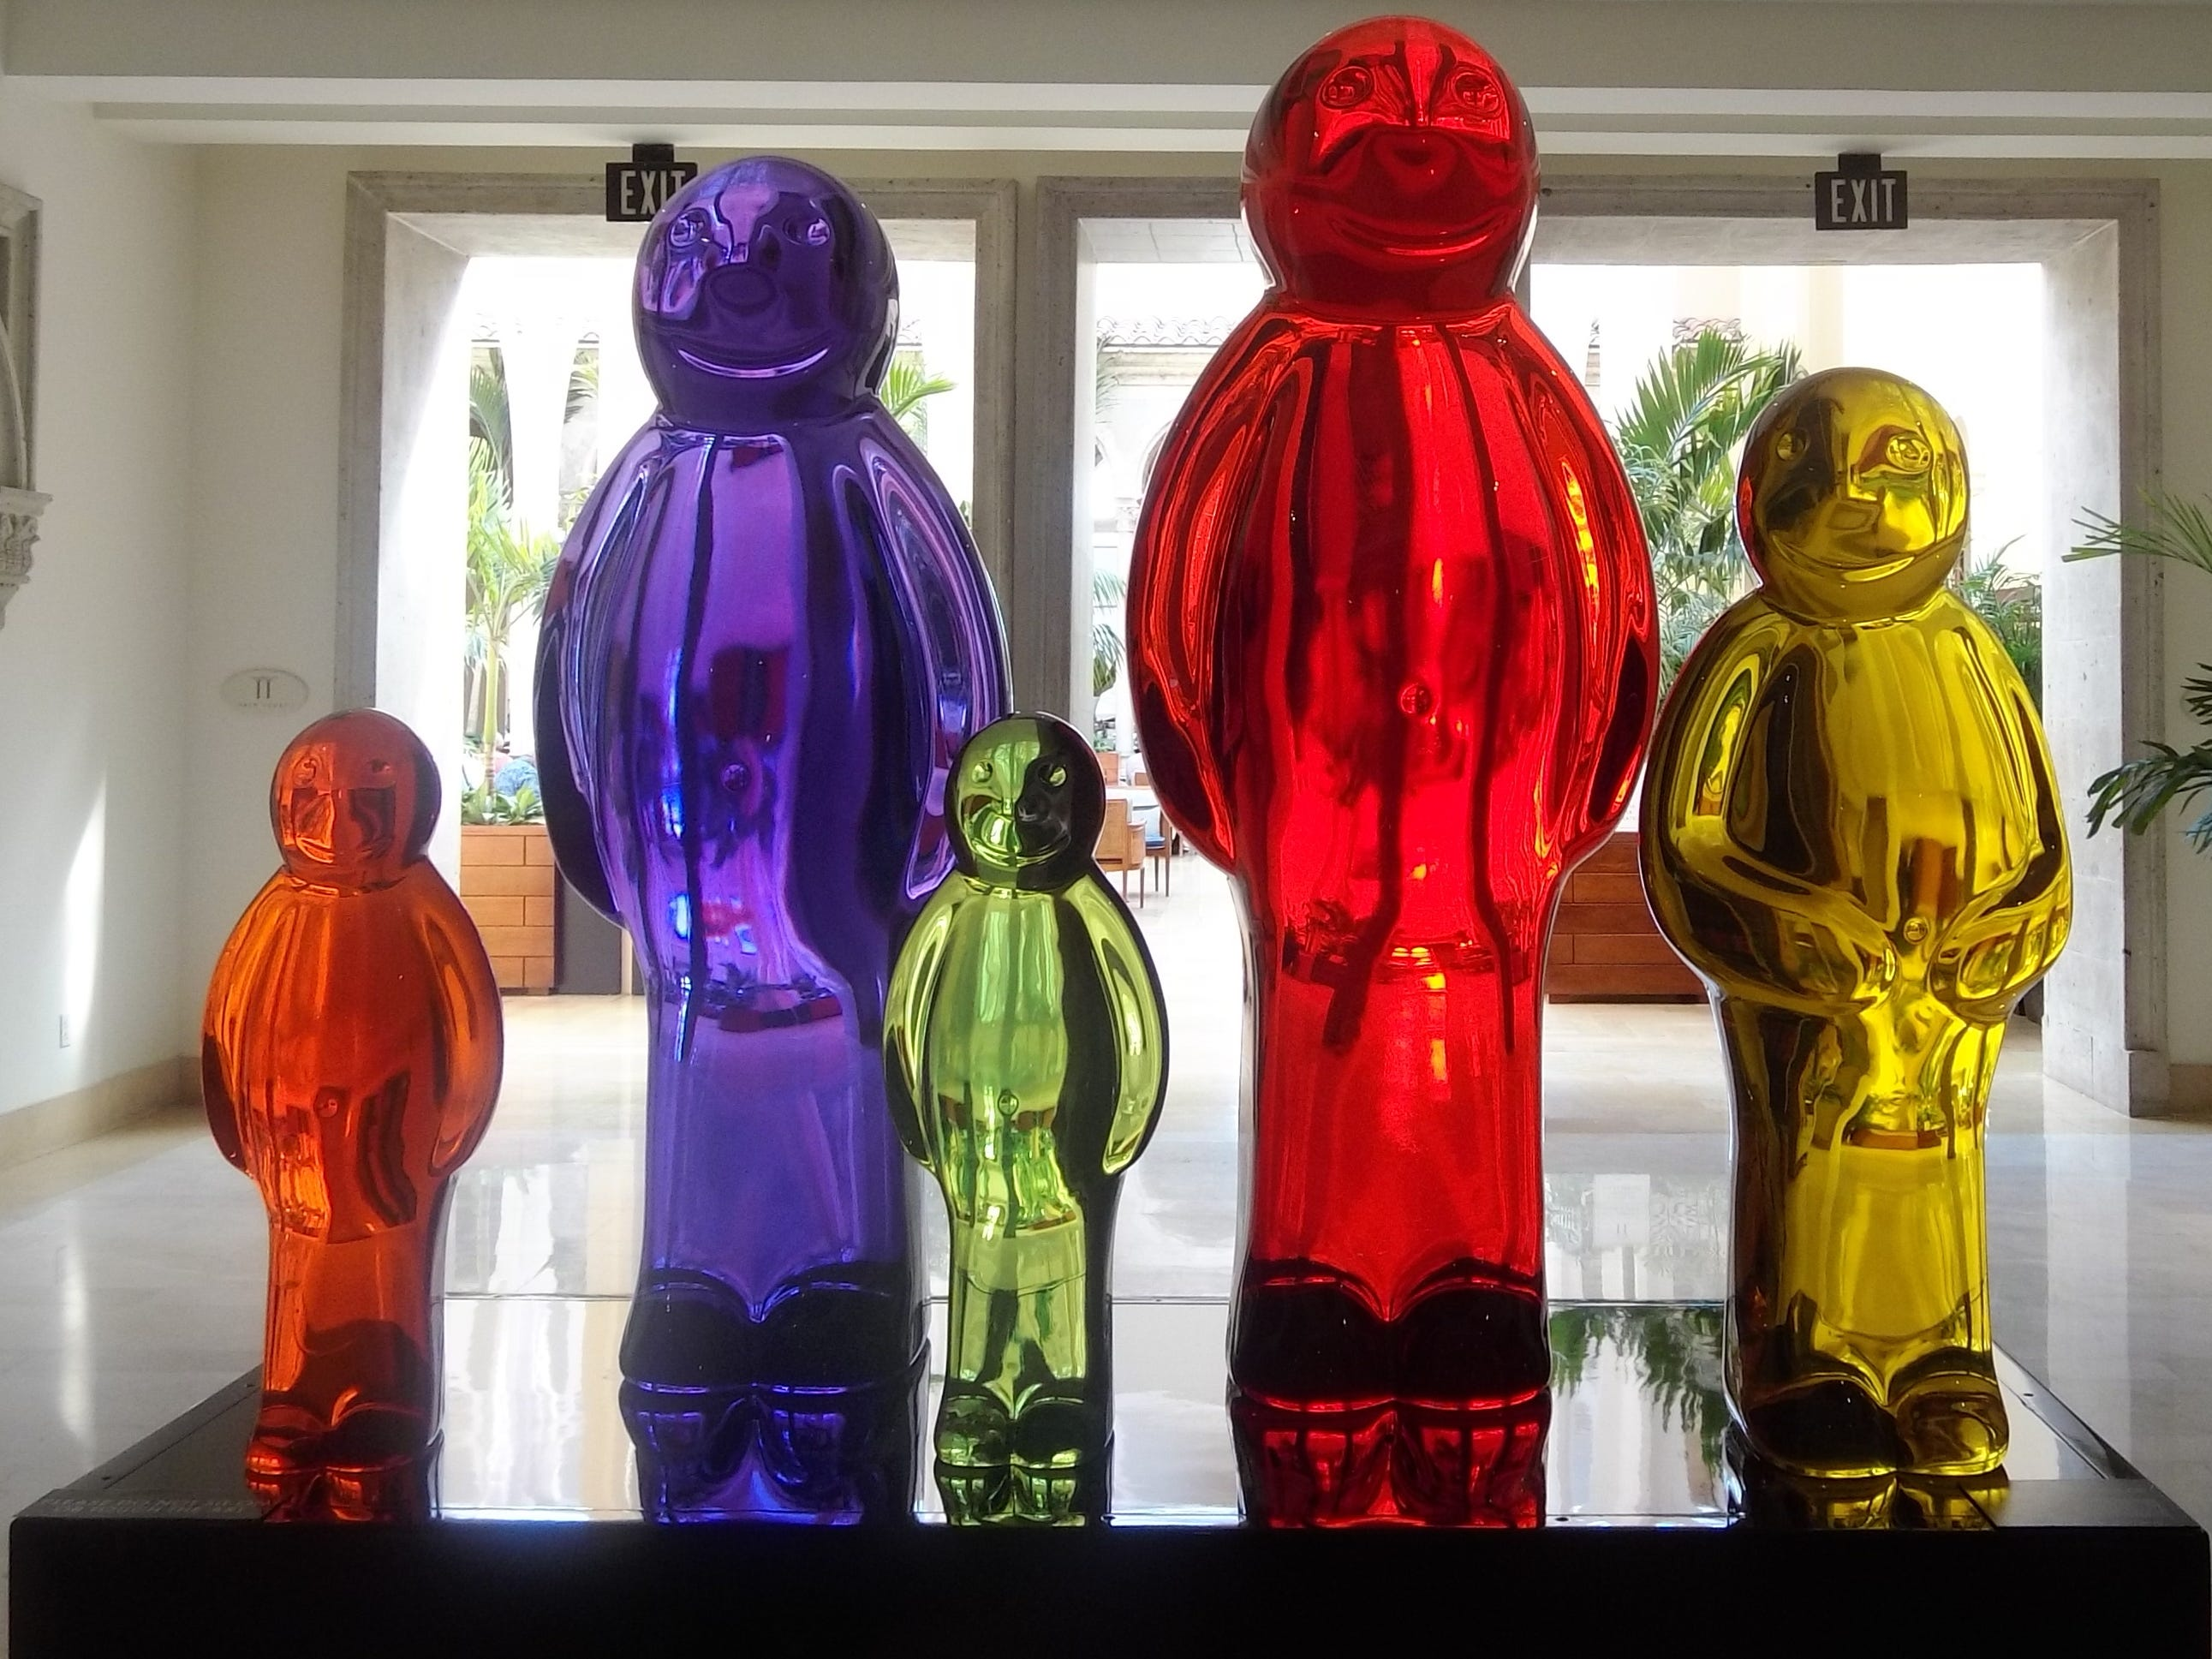 """""""Jelly Baby Family"""" by Mauro Perucchetti is one of the works of art on display through Sponder Gallery, and is available for purchase."""